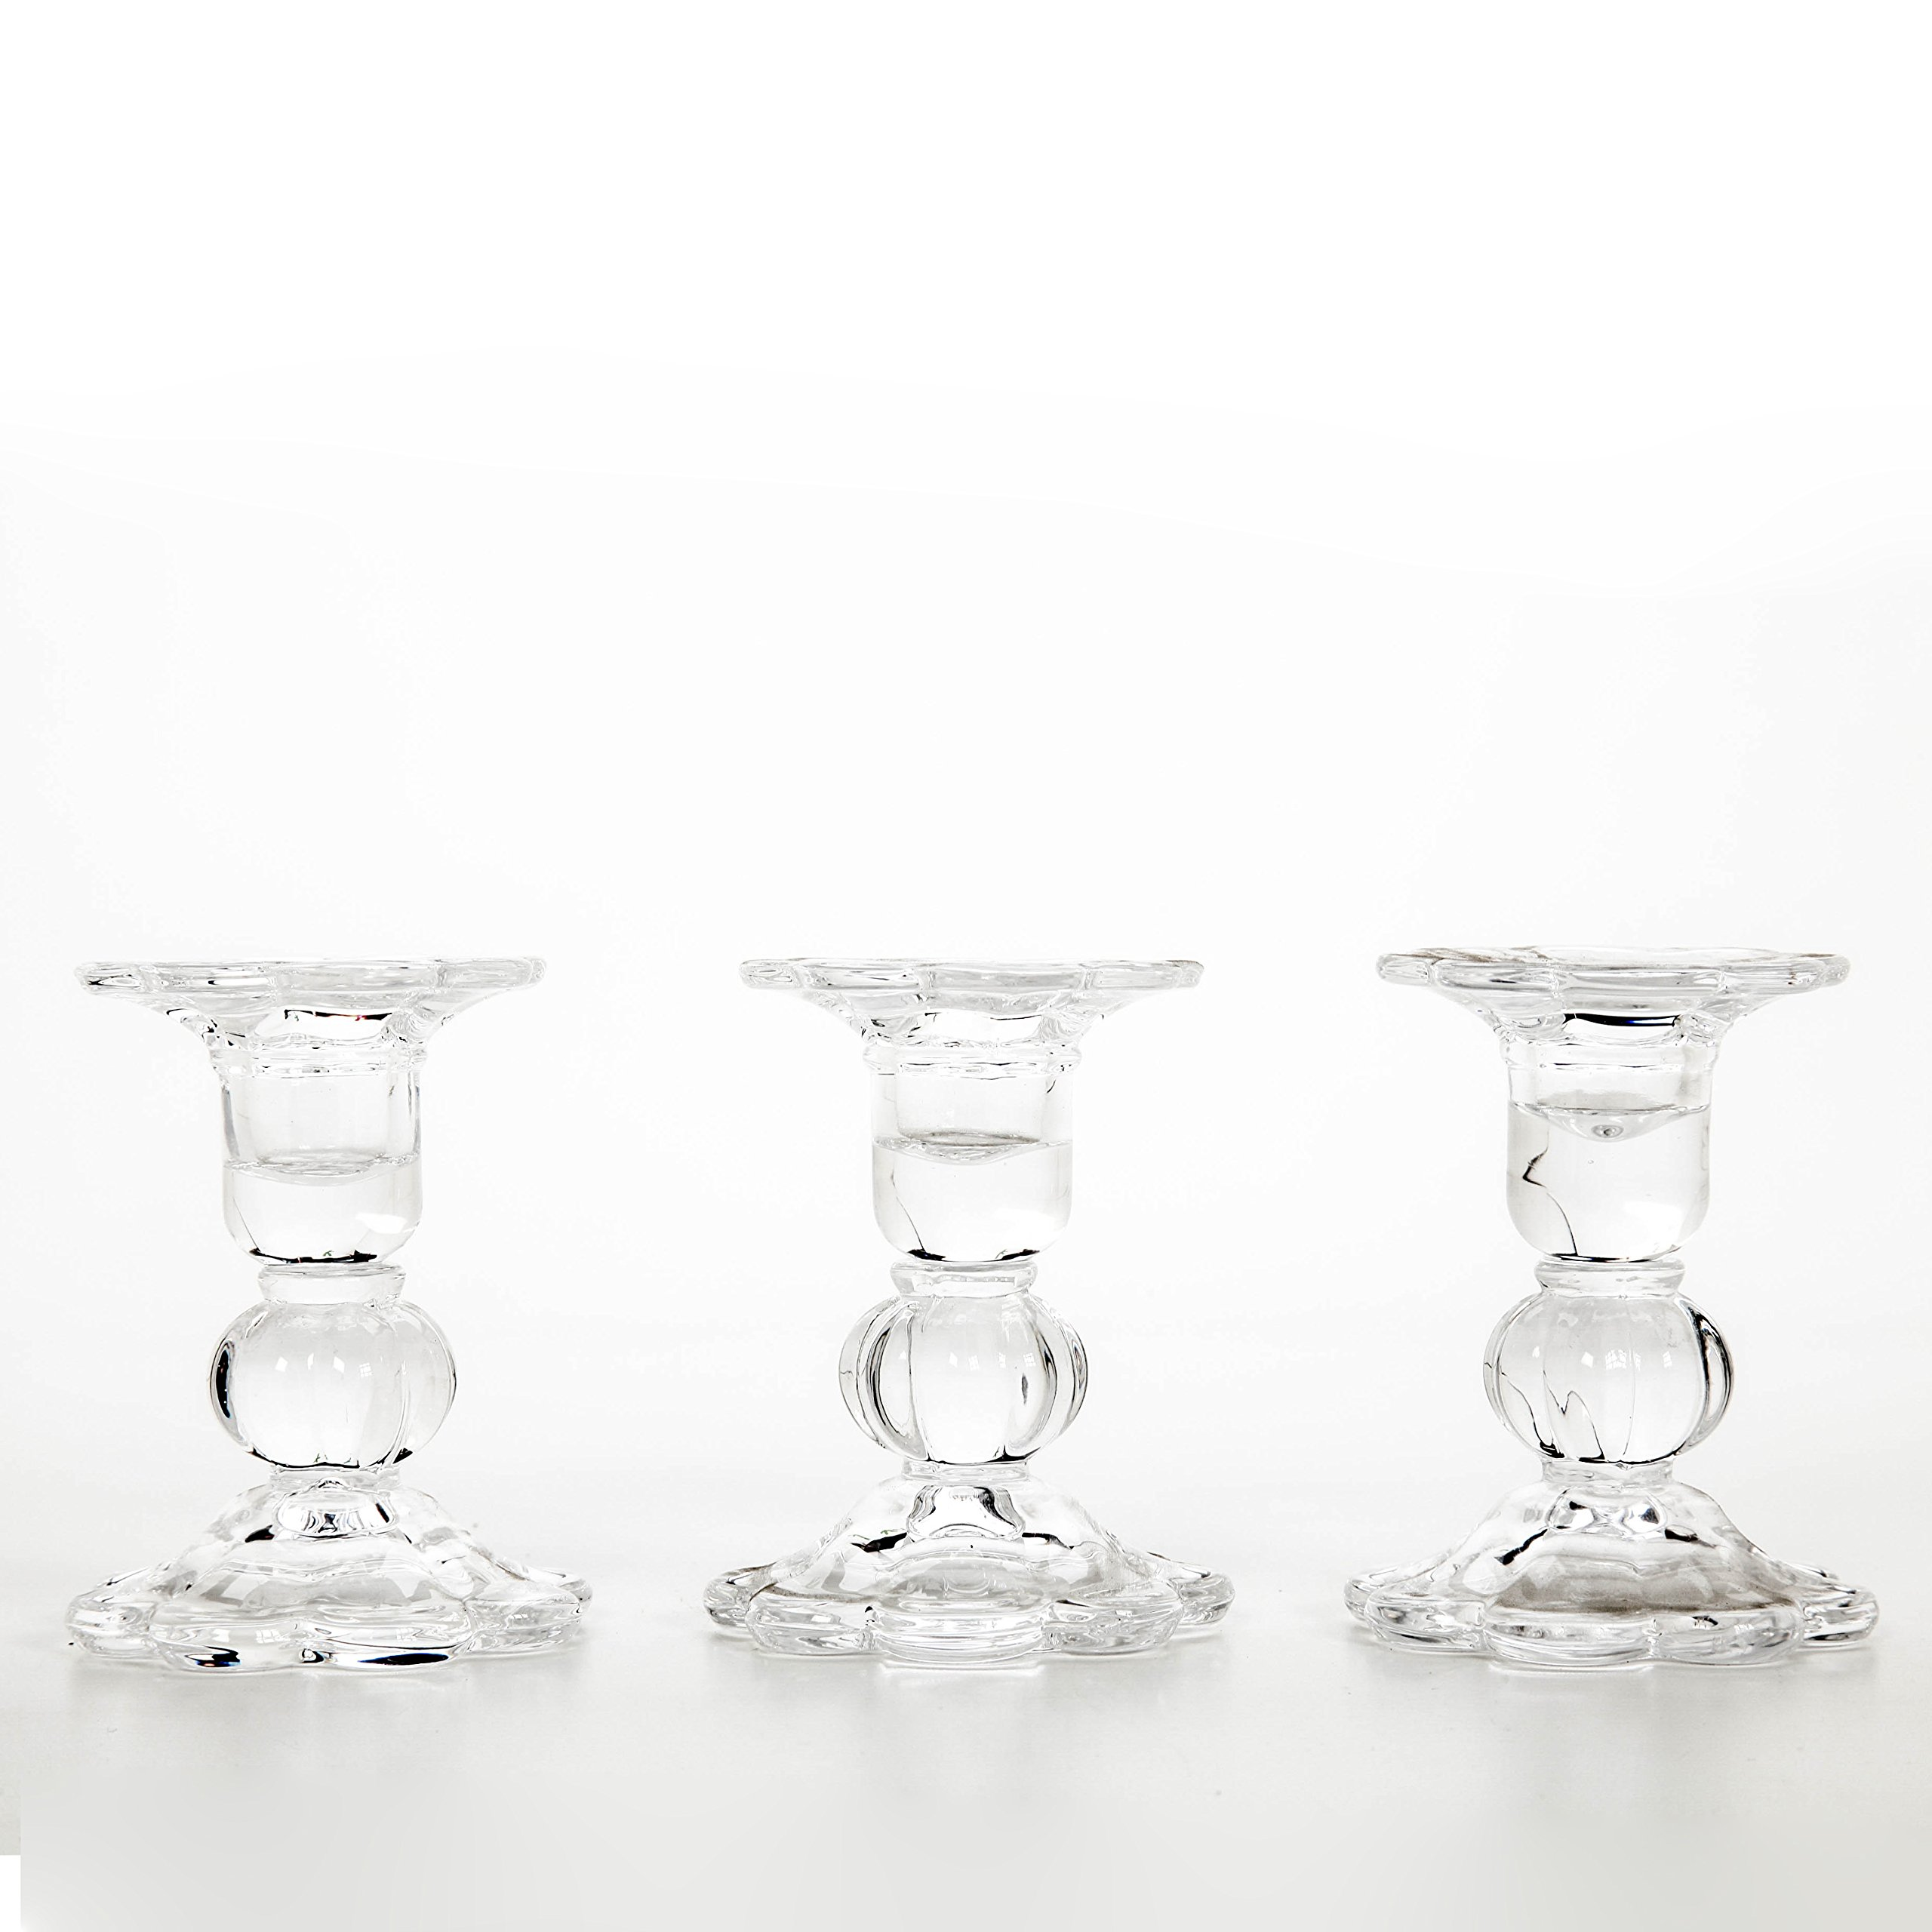 Hosley Set of 3 Glass Taper Candle holders - 3.9'' High. Classic Decor for Wedding, Party, Gifts. Bulk Buy, Spa, Aromatherapy W1 by Hosley (Image #1)